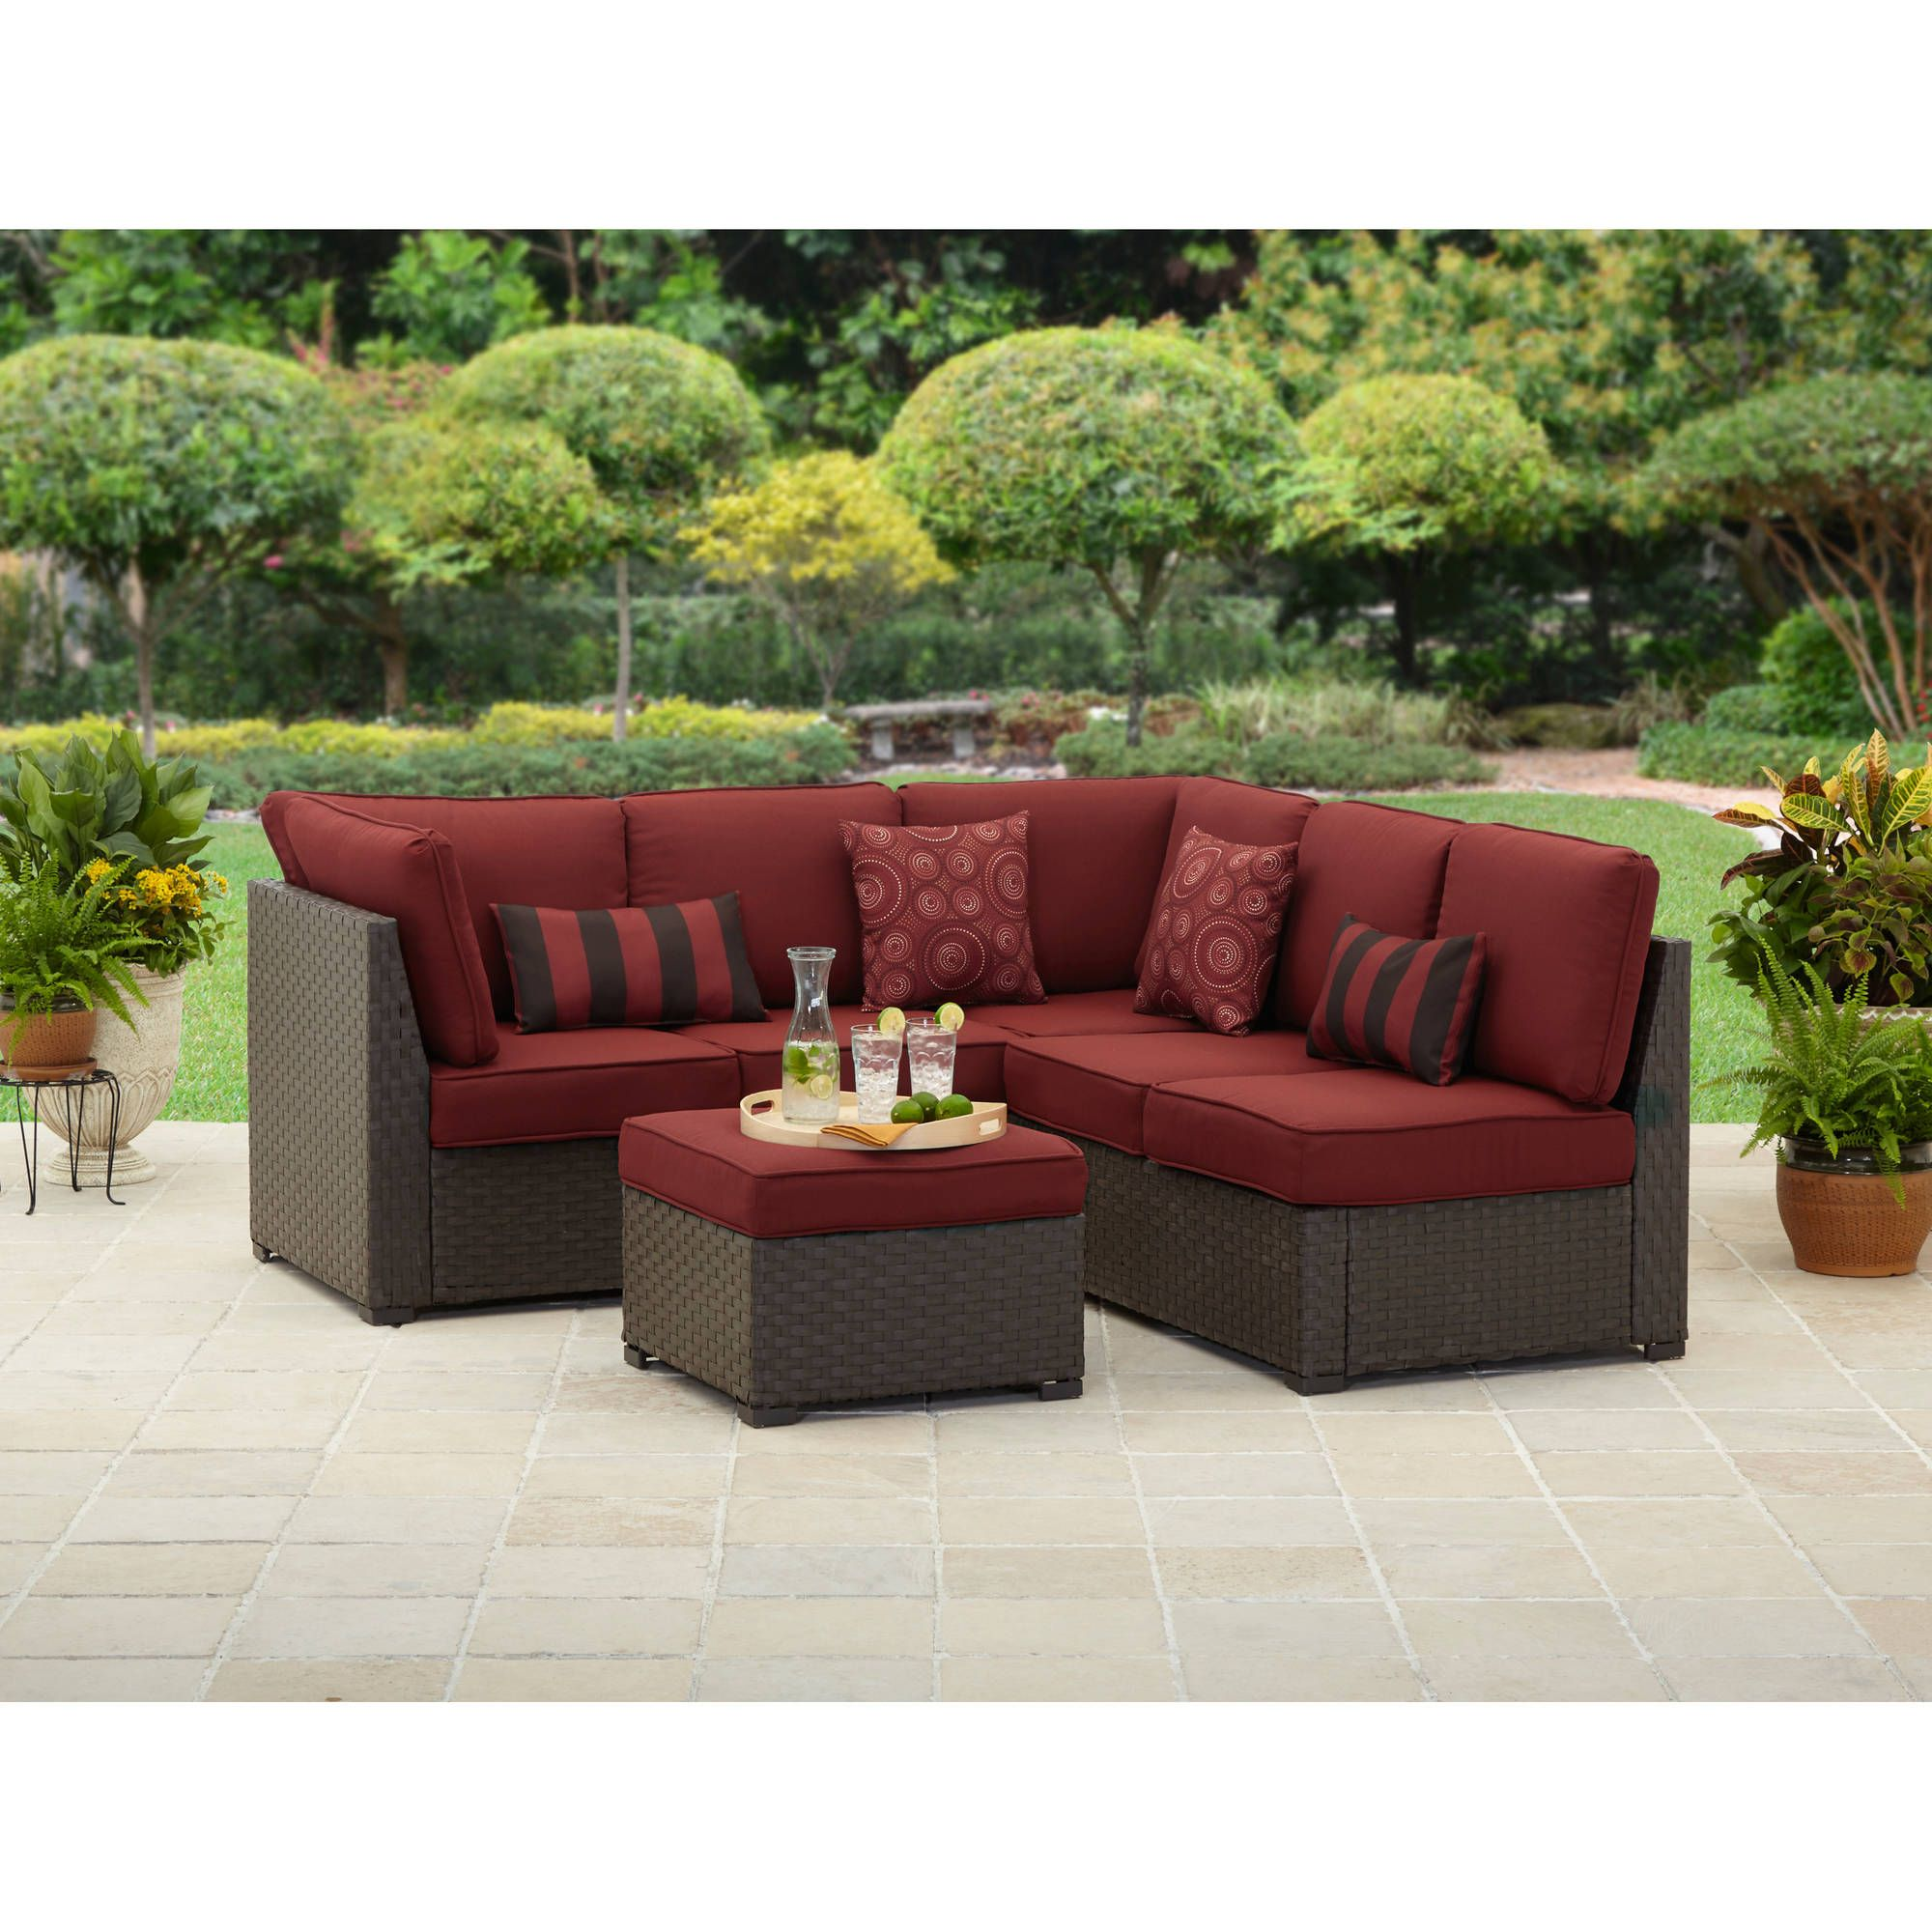 Add The Beauty Of Outdoor Sectional Sofa To Your Compound Decor In